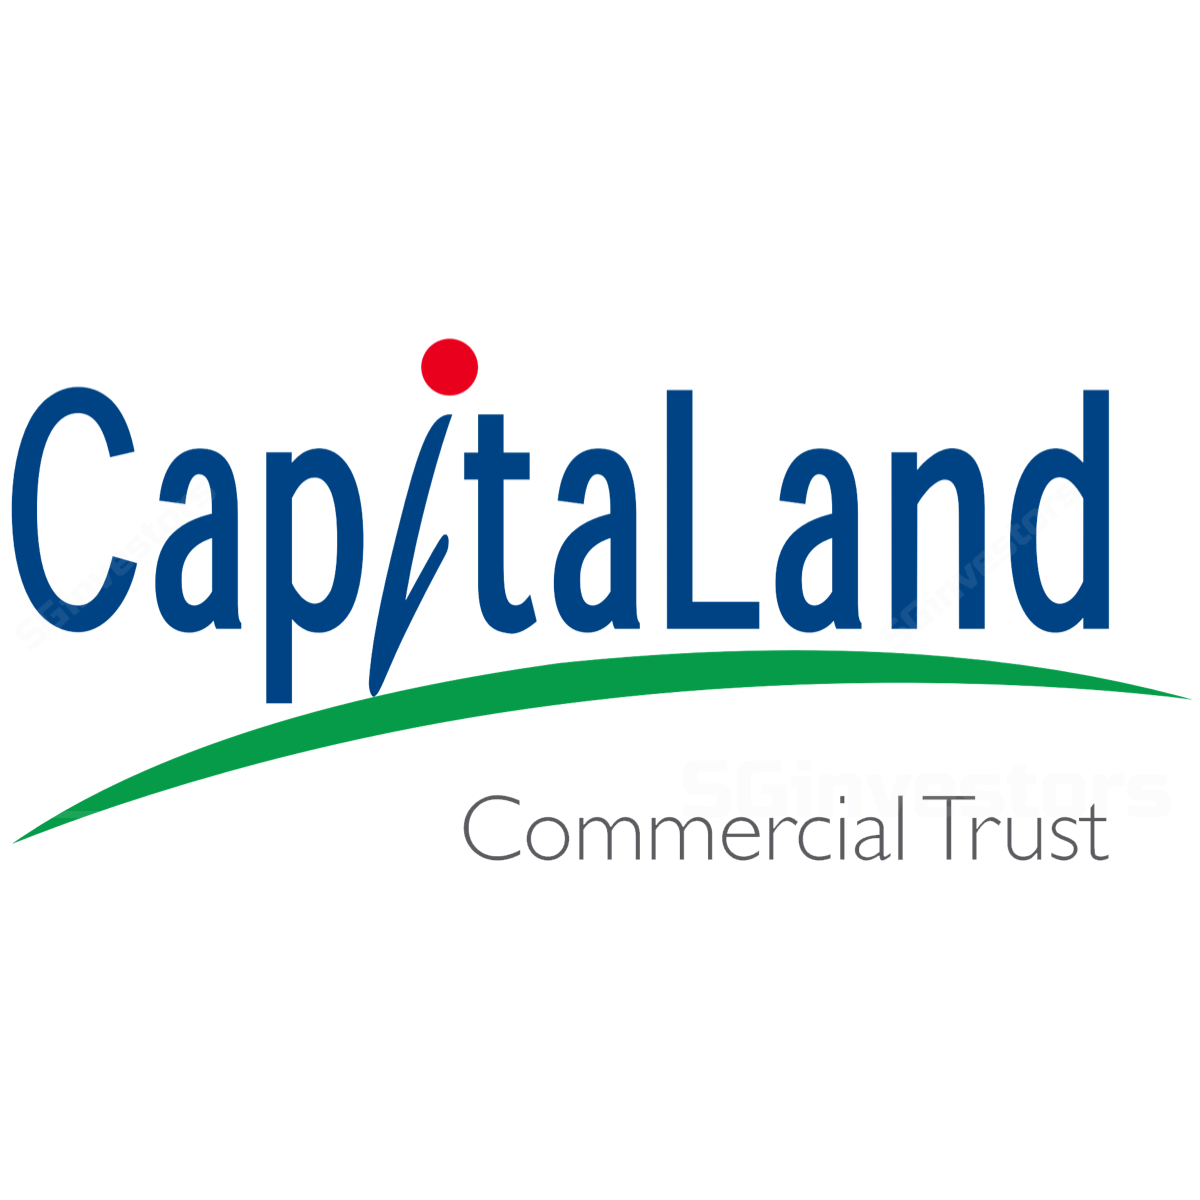 CapitaLand Commercial Trust - DBS Vickers 2017-07-20: An Investment That Keeps Giving